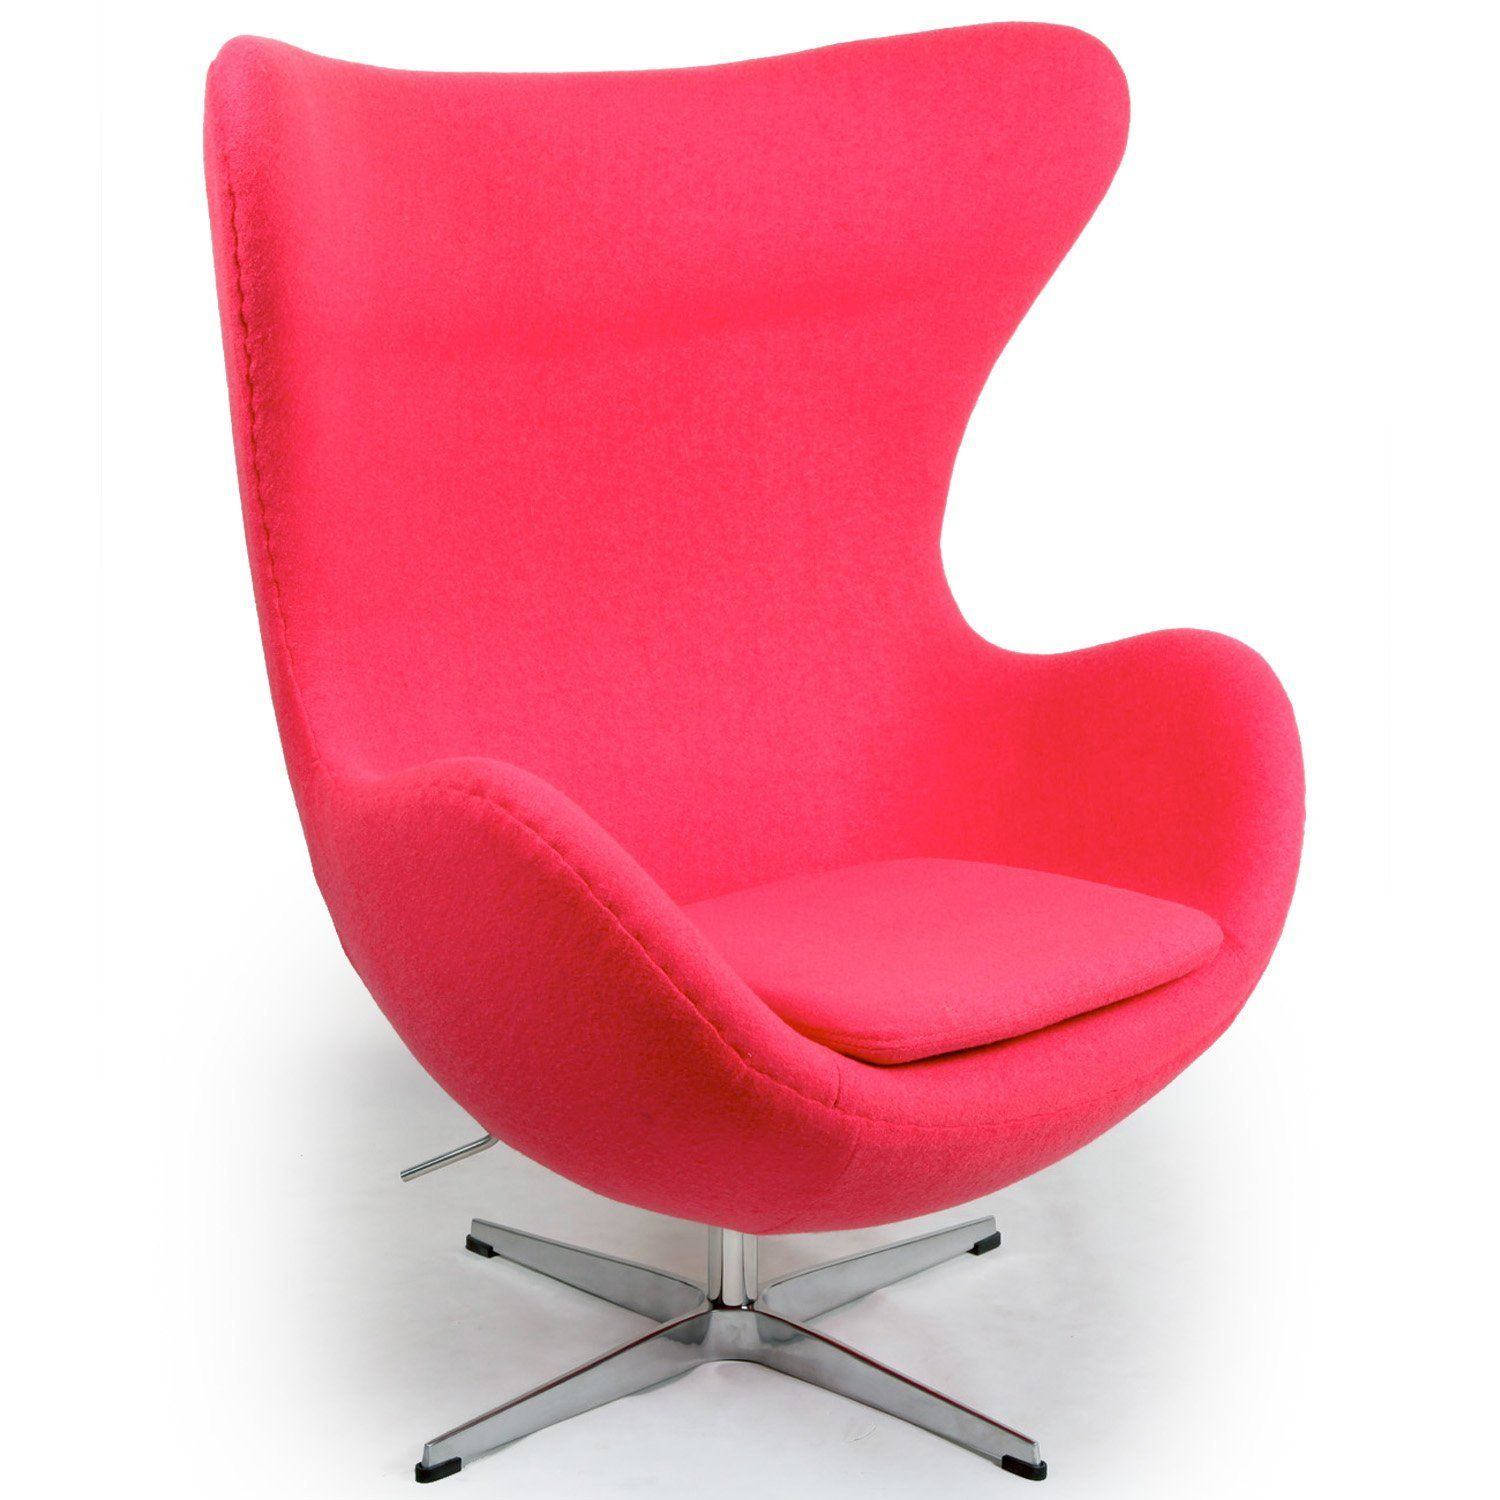 funky chairs for teens funky pink chairs for teen girls kardiel egg chair